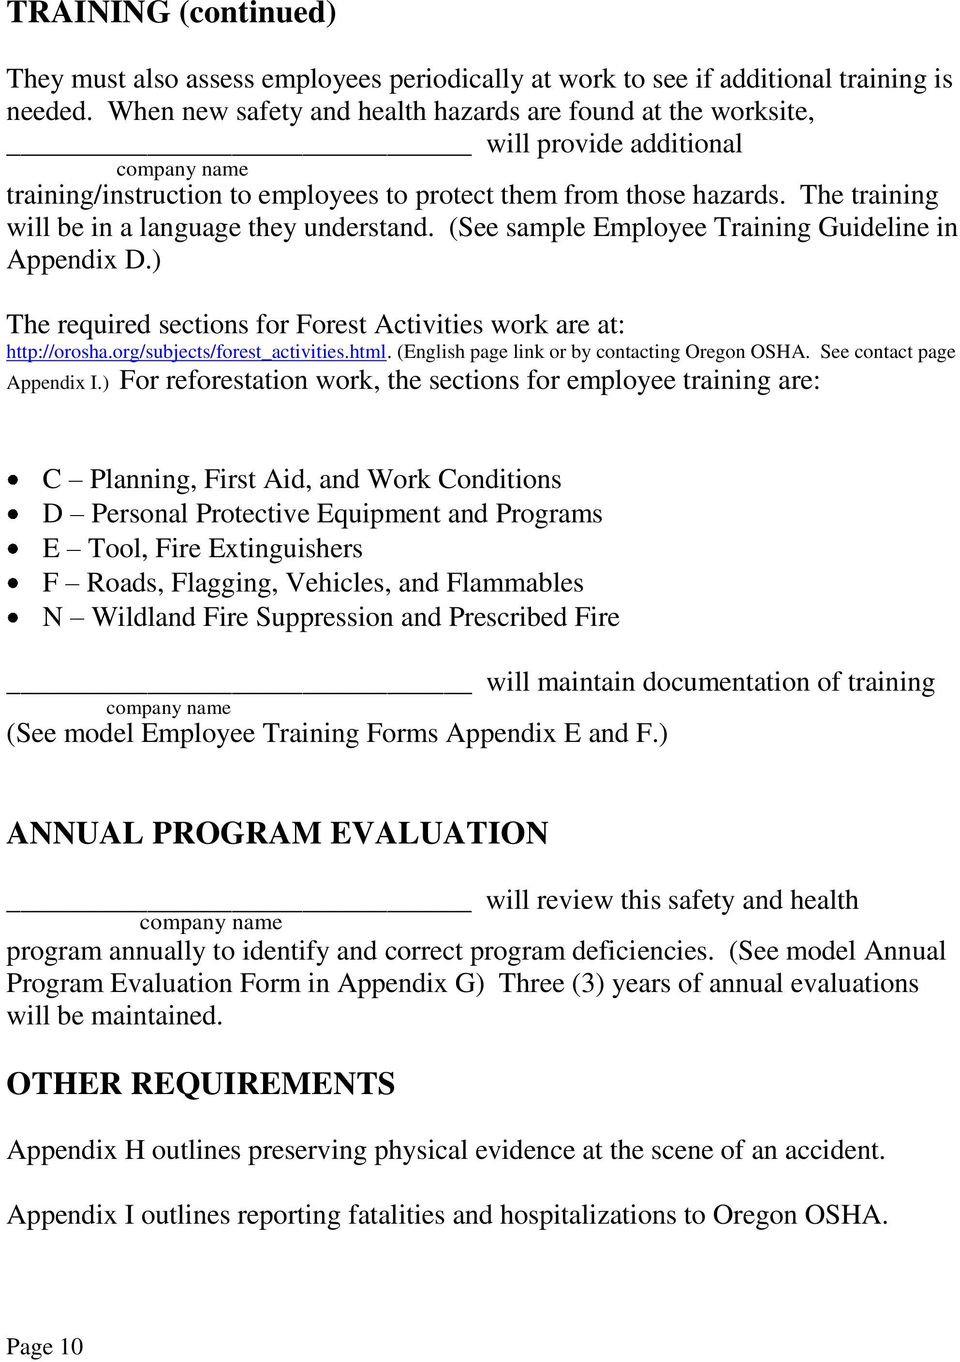 The training will be in a language they understand. (See sample Employee Training Guideline in Appendix D.) The required sections for Forest Activities work are at: http://orosha.